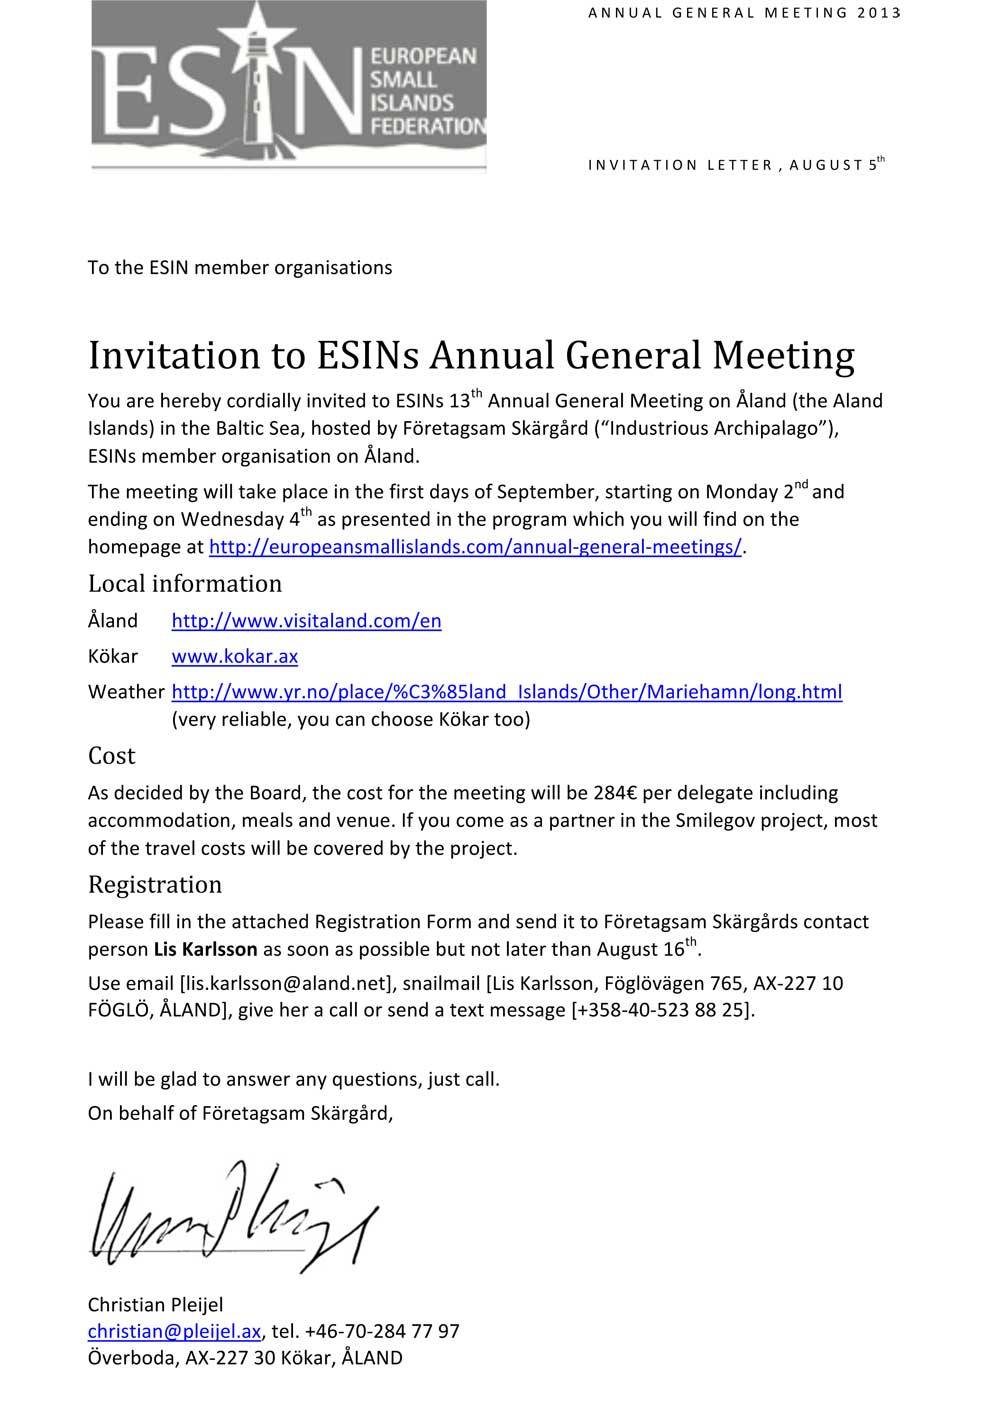 how to write an invitation letter for annual general meeting